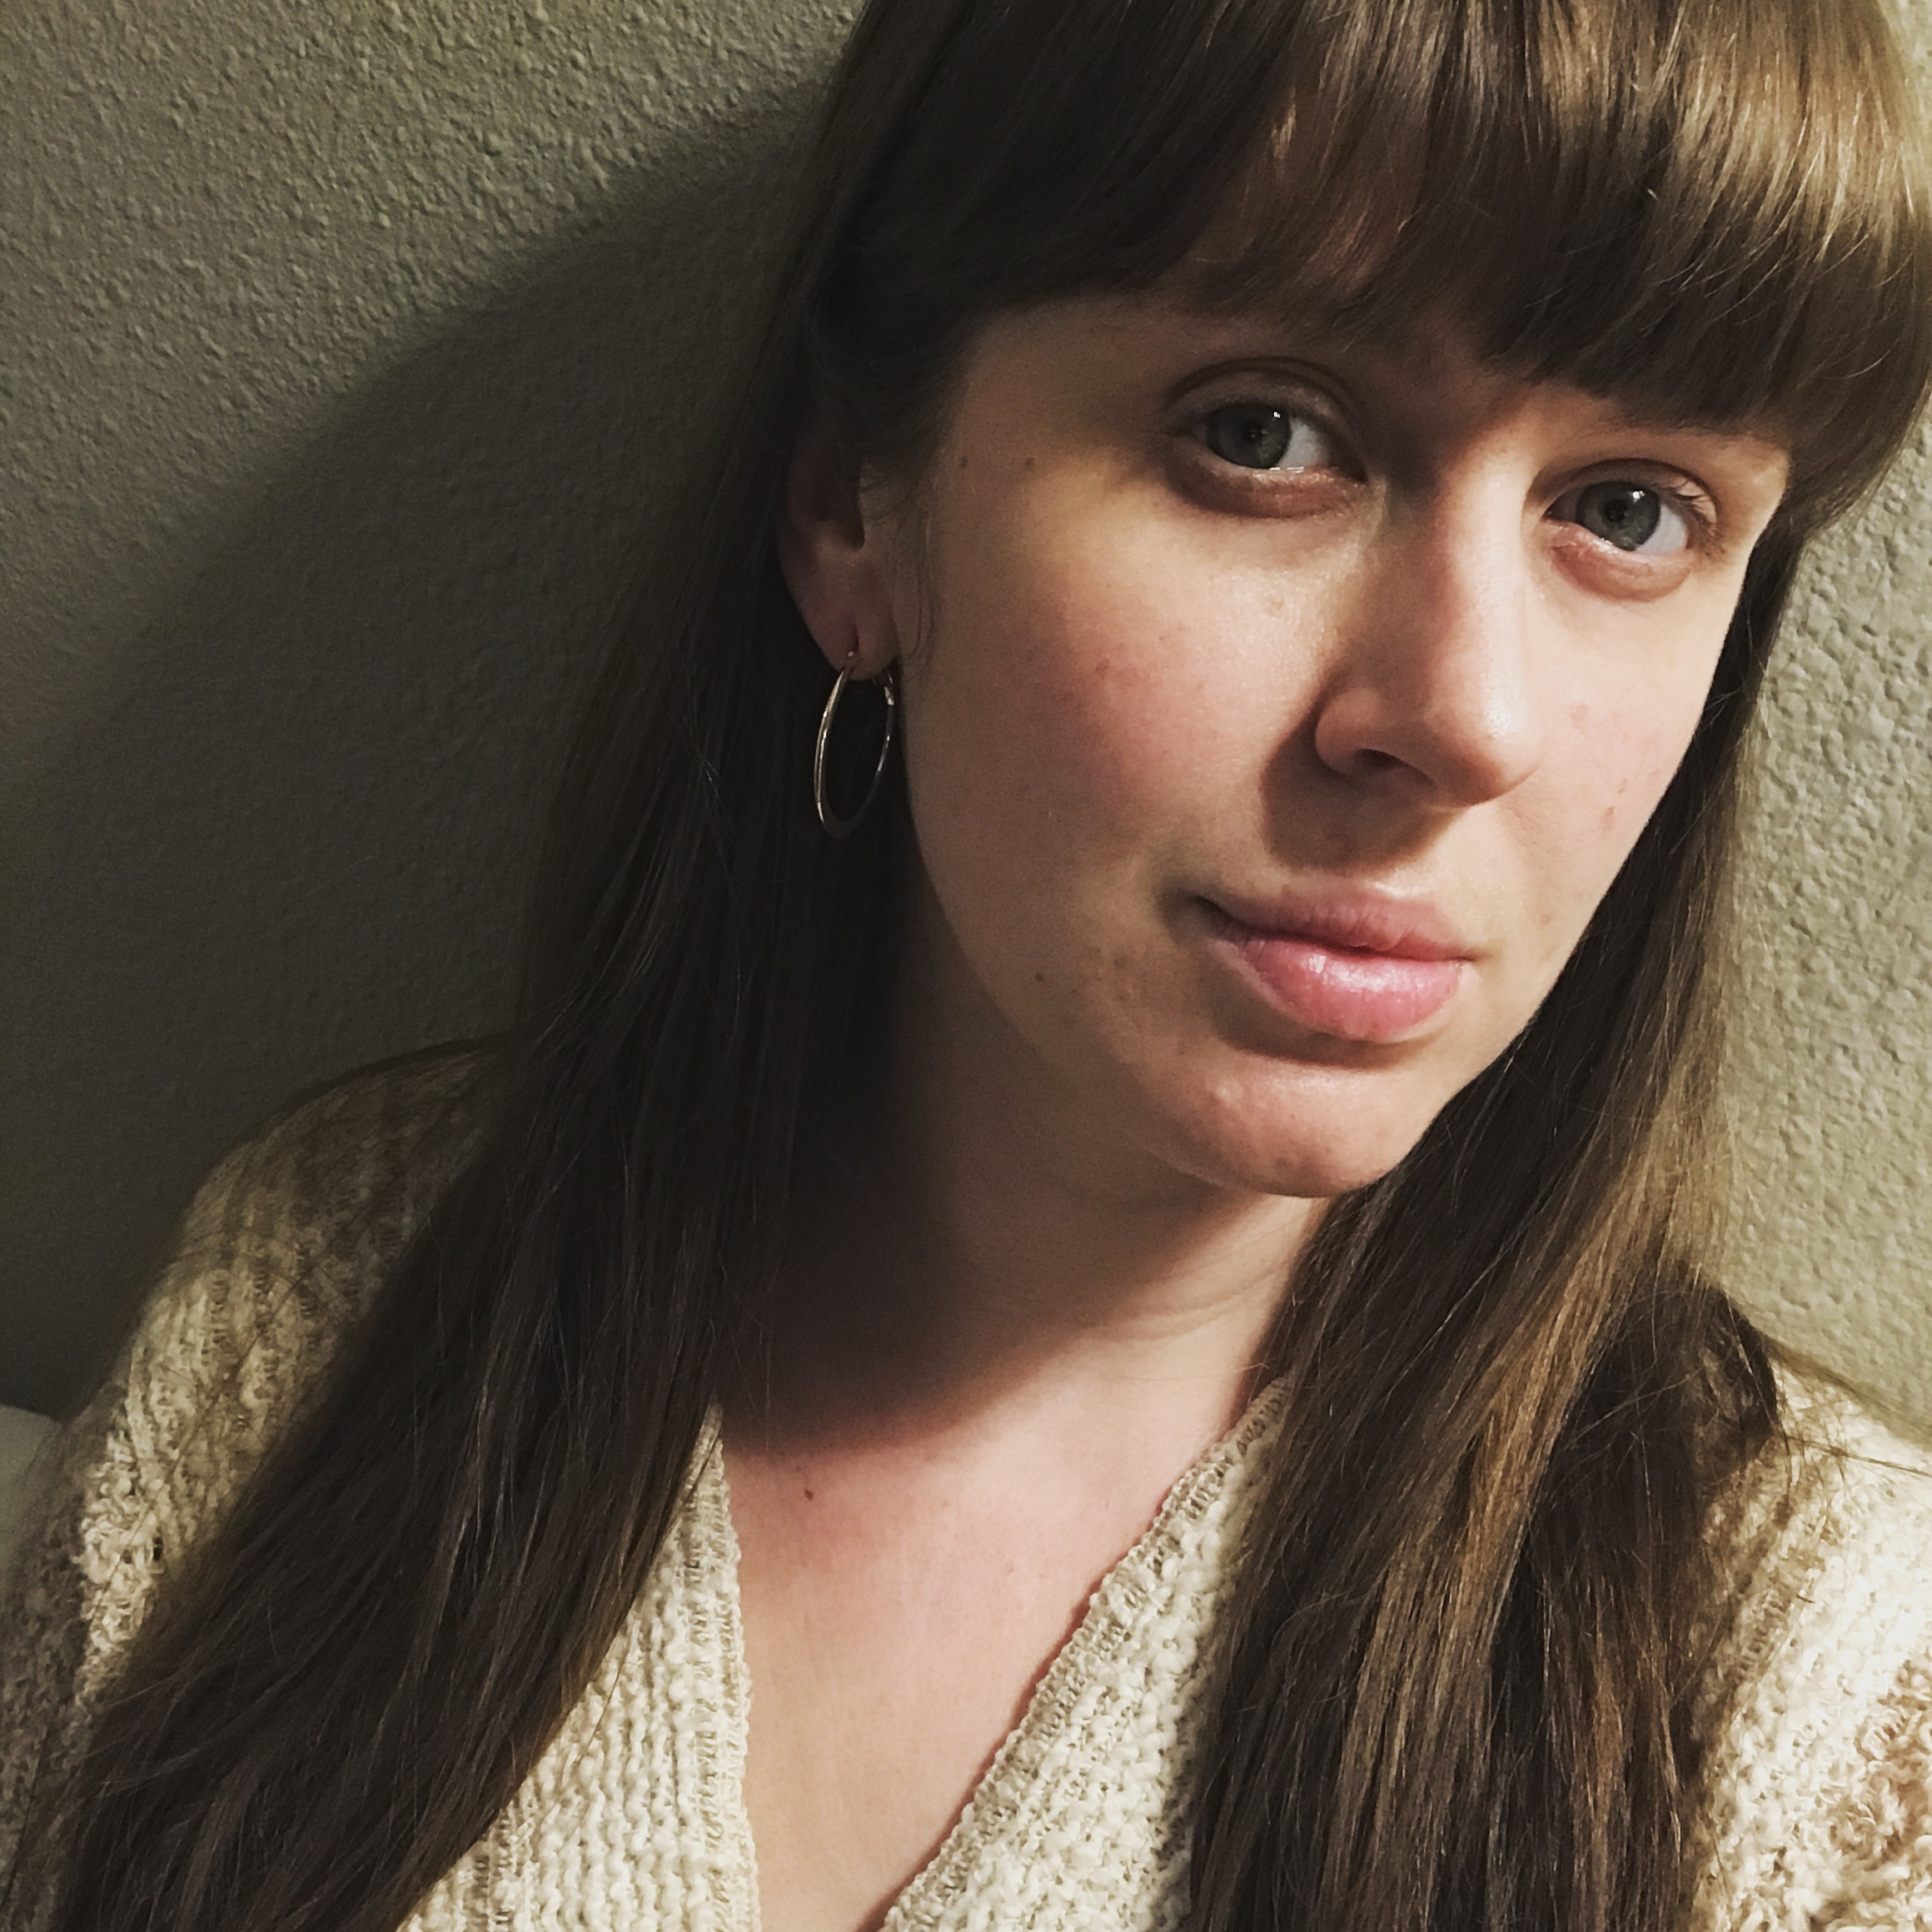 - Ms. Middleton is a queer mama with a BA in English Literature and Writing from Marylhurst University. She writes poetry and creative non-fiction, often about modern domestic life and how it collides with family history. She lives in Portland, OR, loves a good red wine and is indeed softening her gaze in this photo.